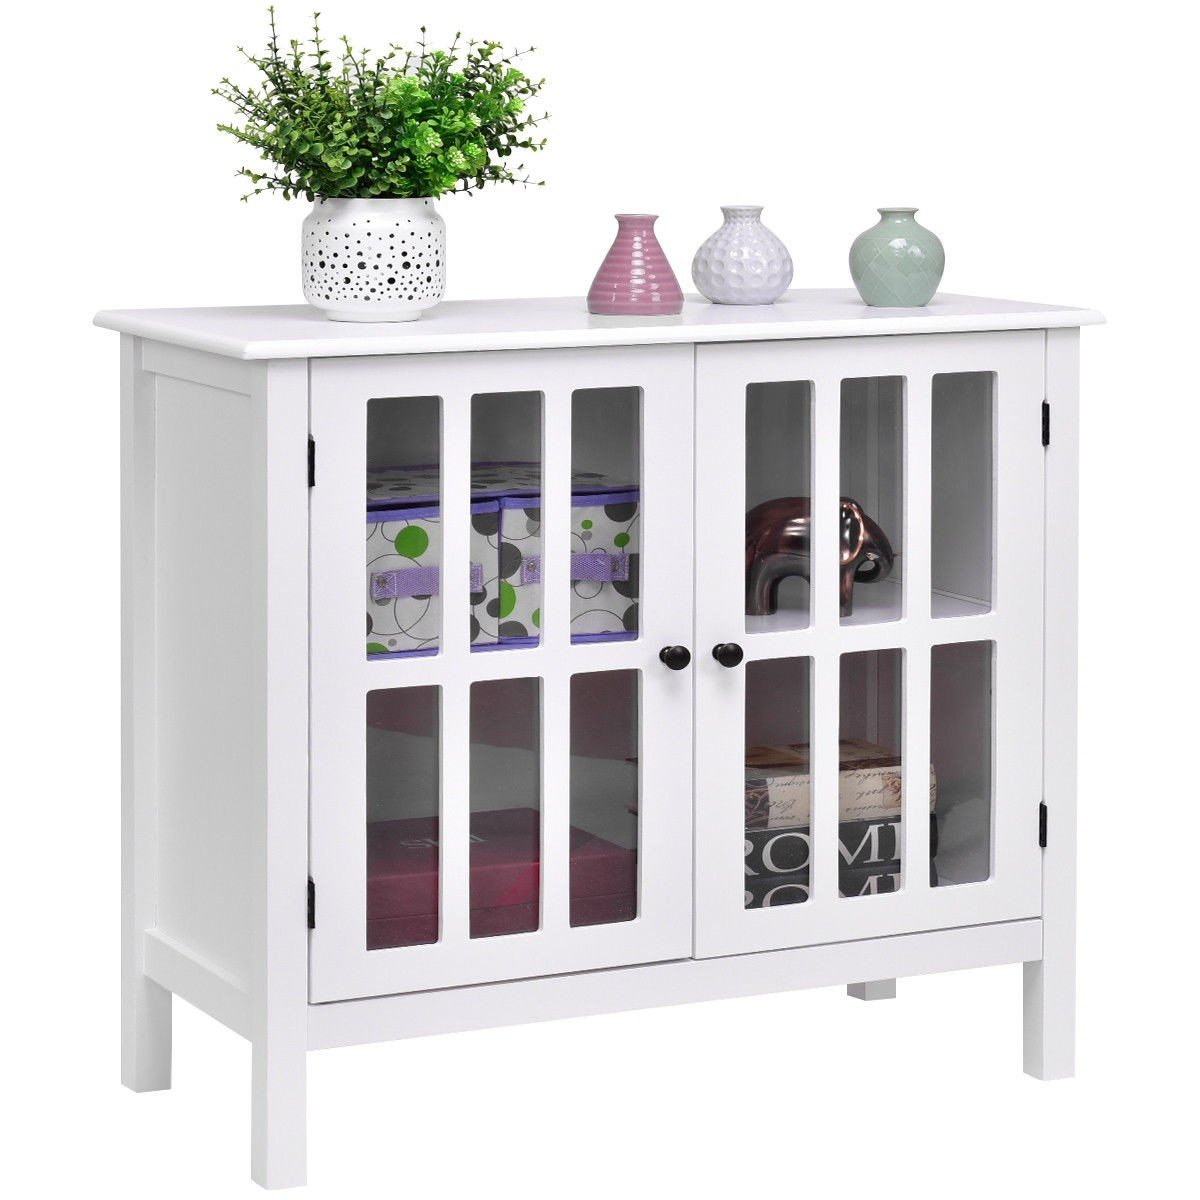 Custpromo Storage Buffet Cabinet Glass Door Sideboard Console Table Kitchen Dining Room Furniture (White) by Custpromo